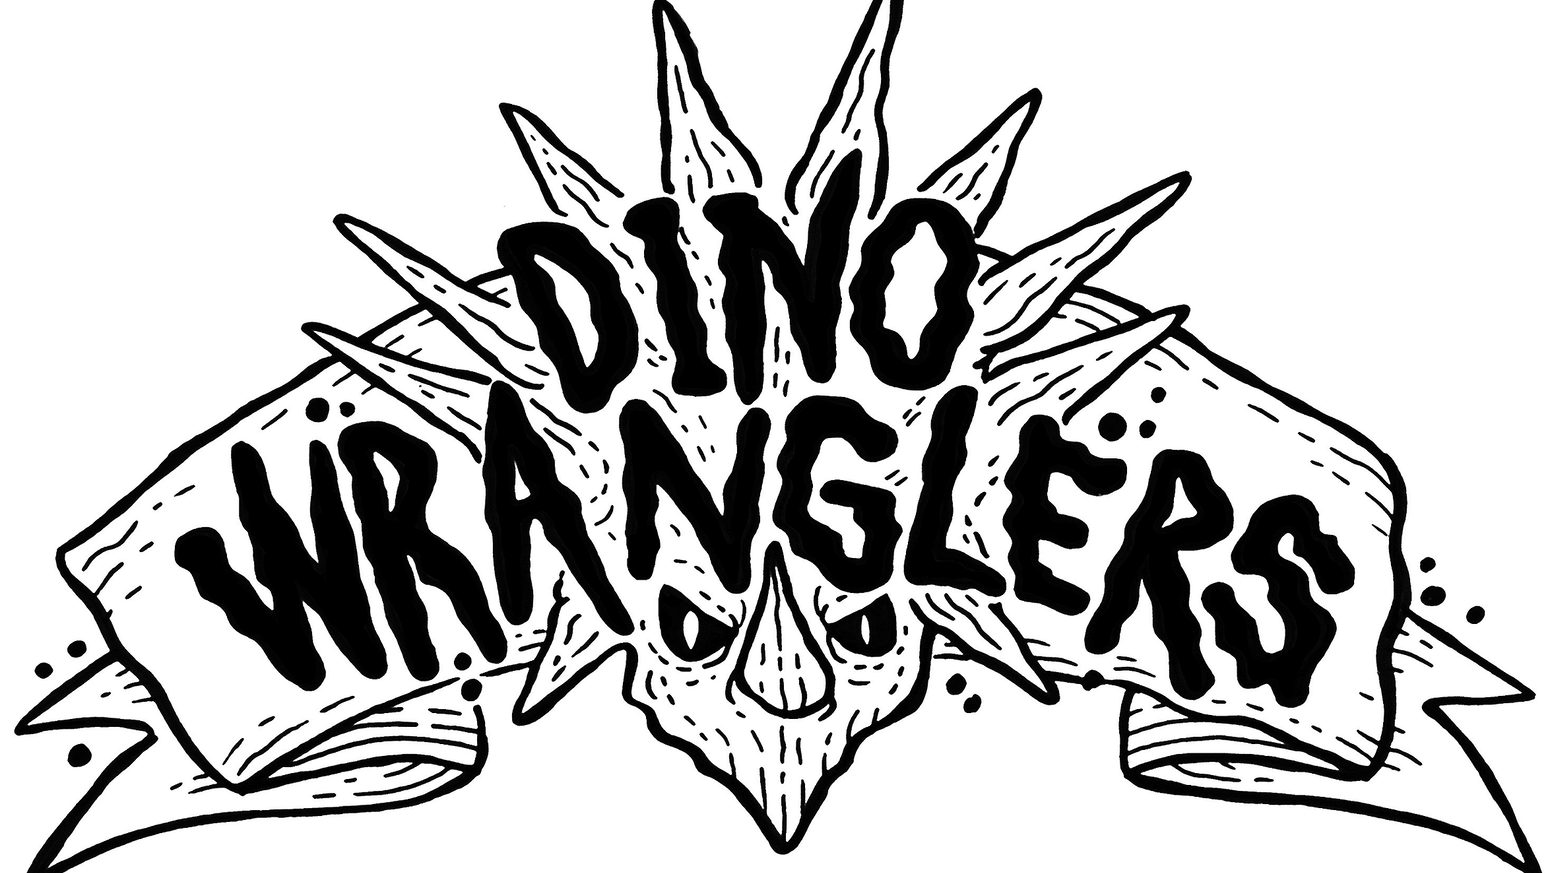 A pick-up-and-play narrative RPG for families about overcoming obstacles as a dinosaur wrangler.